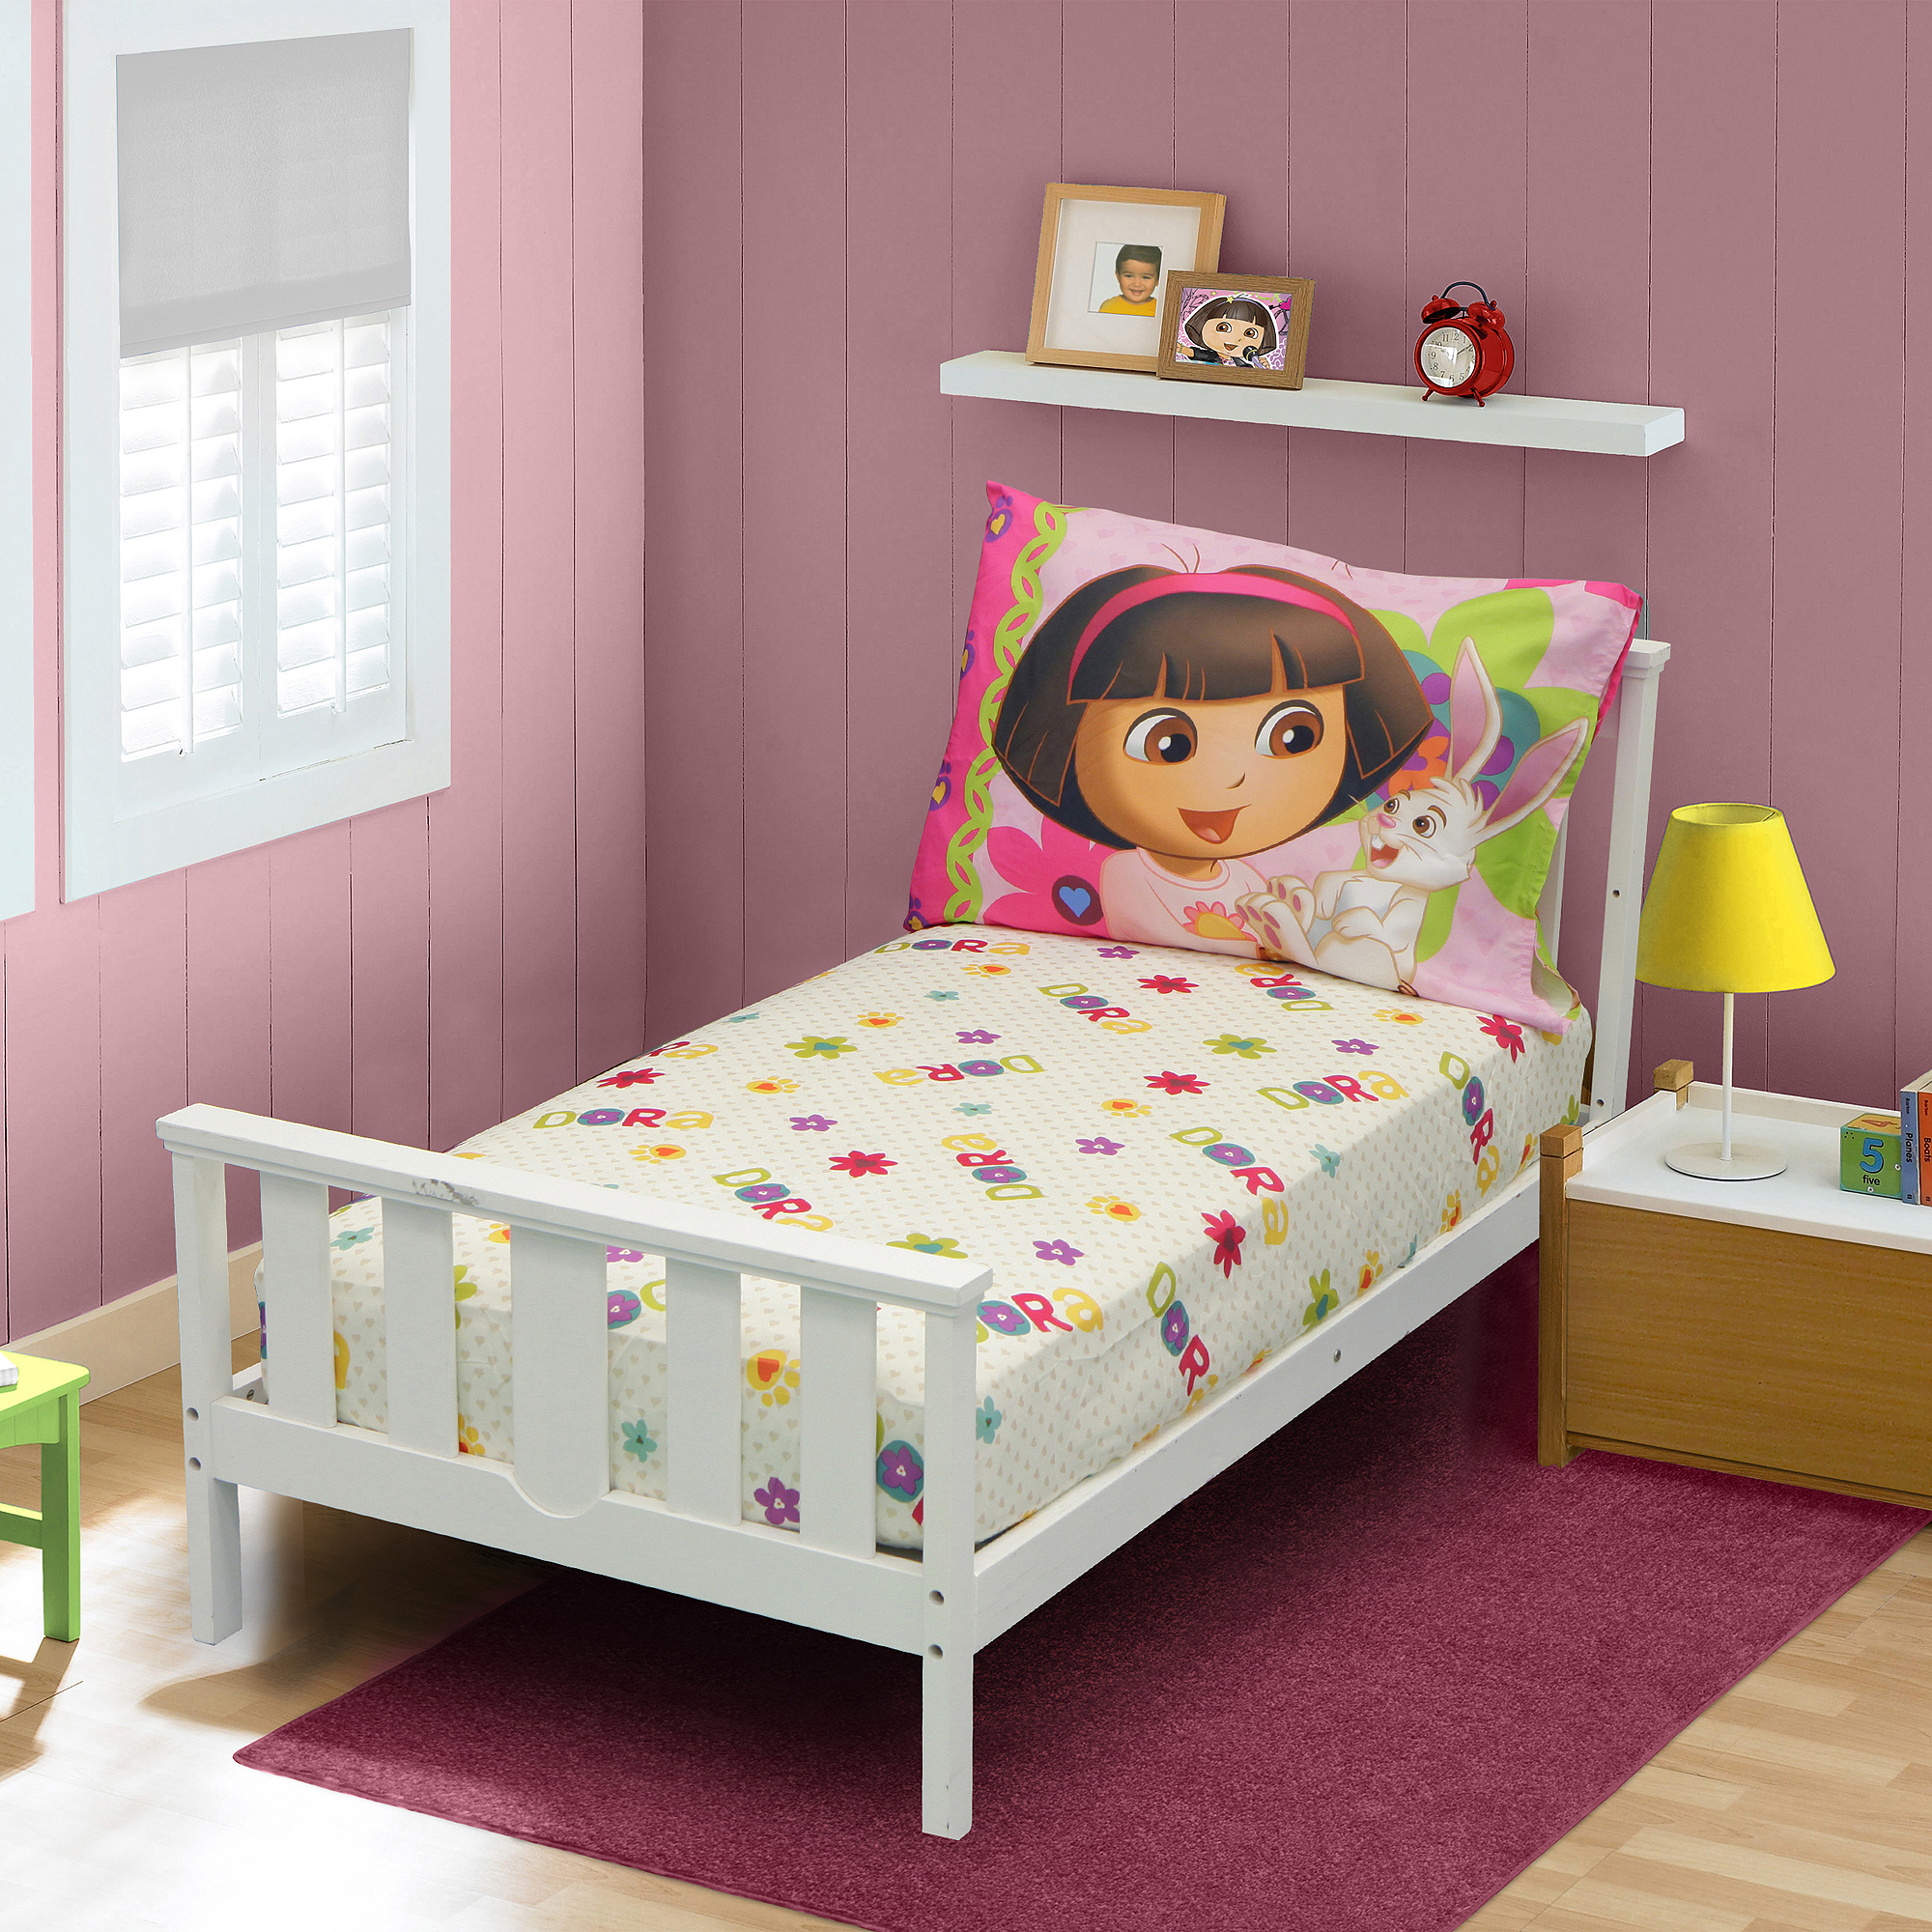 Nickelodeon Dora the Explorer I Love Animals Fitted Sheet and Pillow Case Set